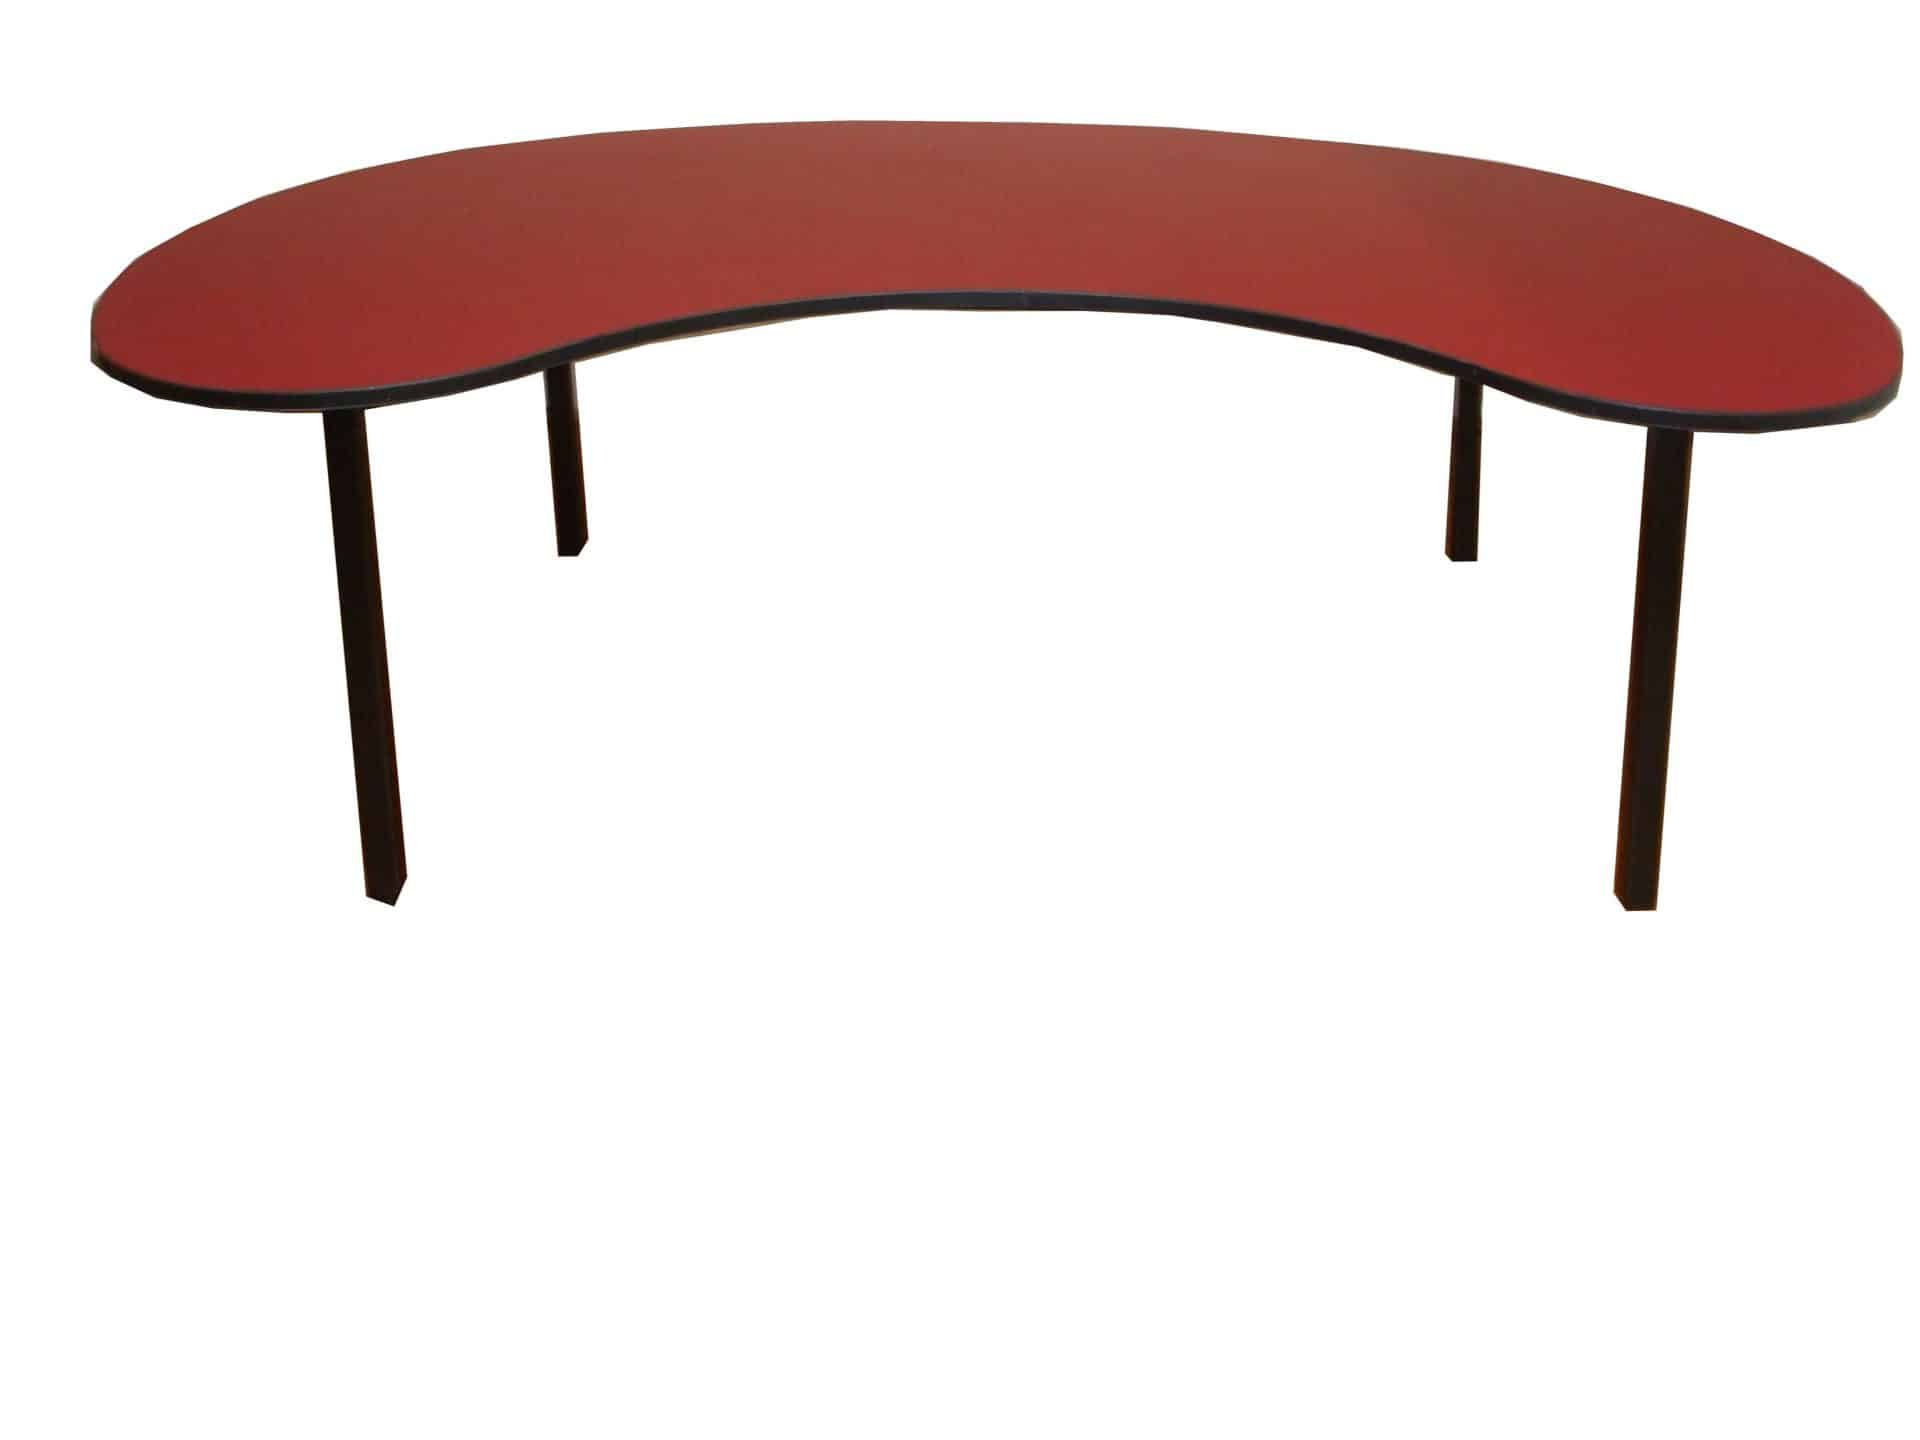 Tbjb111 Jelly Bean Table – 3d Products For Well Liked Jelly Bean Coffee Tables (View 12 of 20)